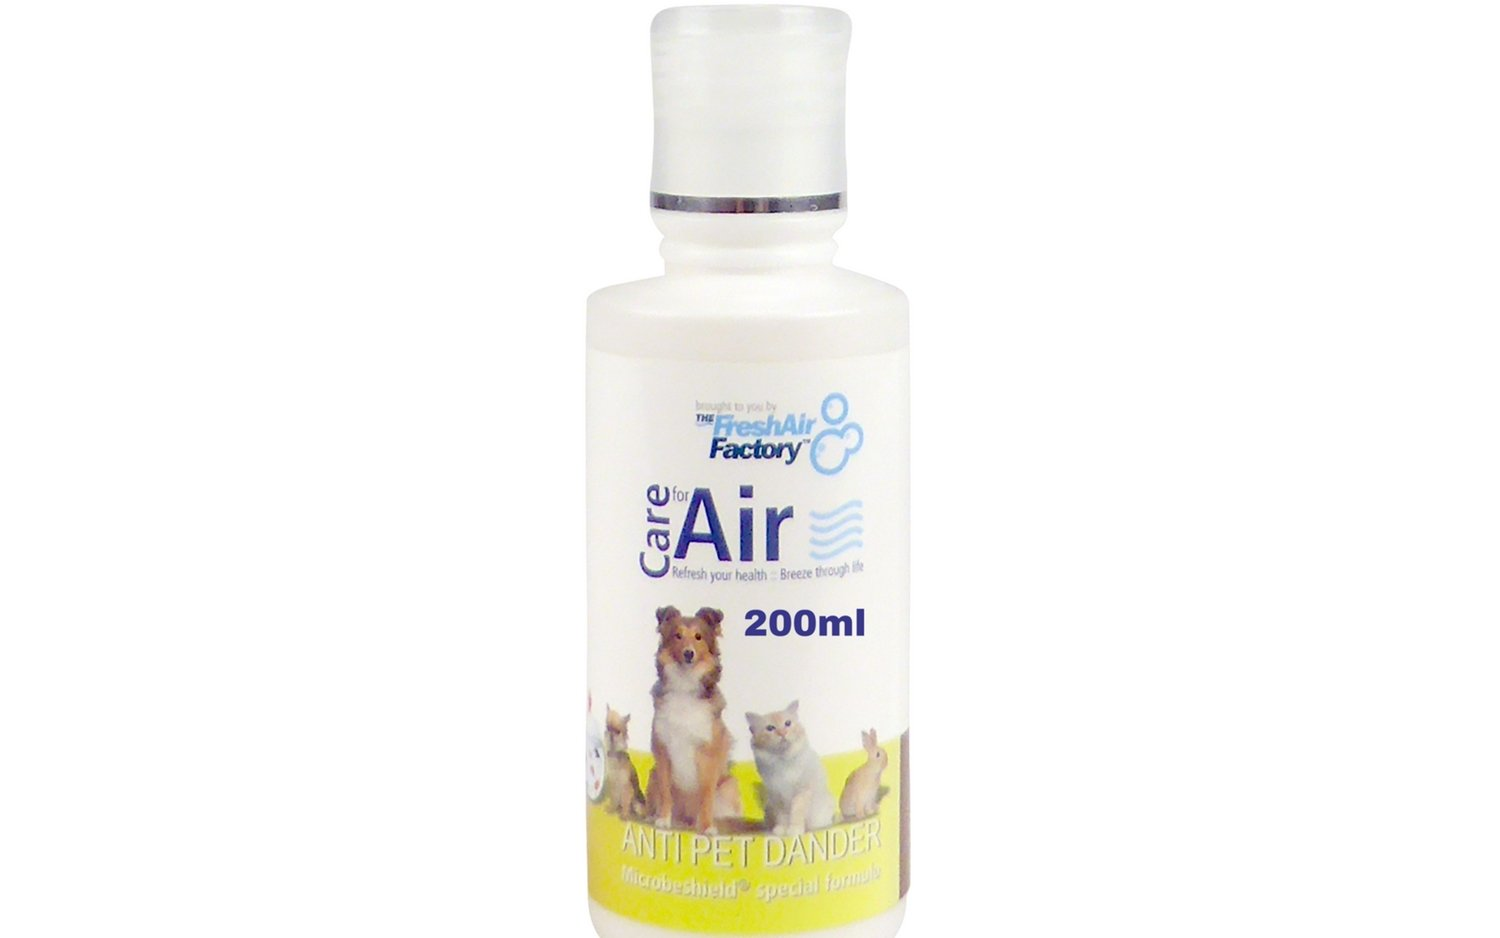 AIR PURIFIER FRAGRANCE FOR HOME - CareforAir Essence - USE IN REVITALIZERS, IONIZERS, HUMIDIFIERS